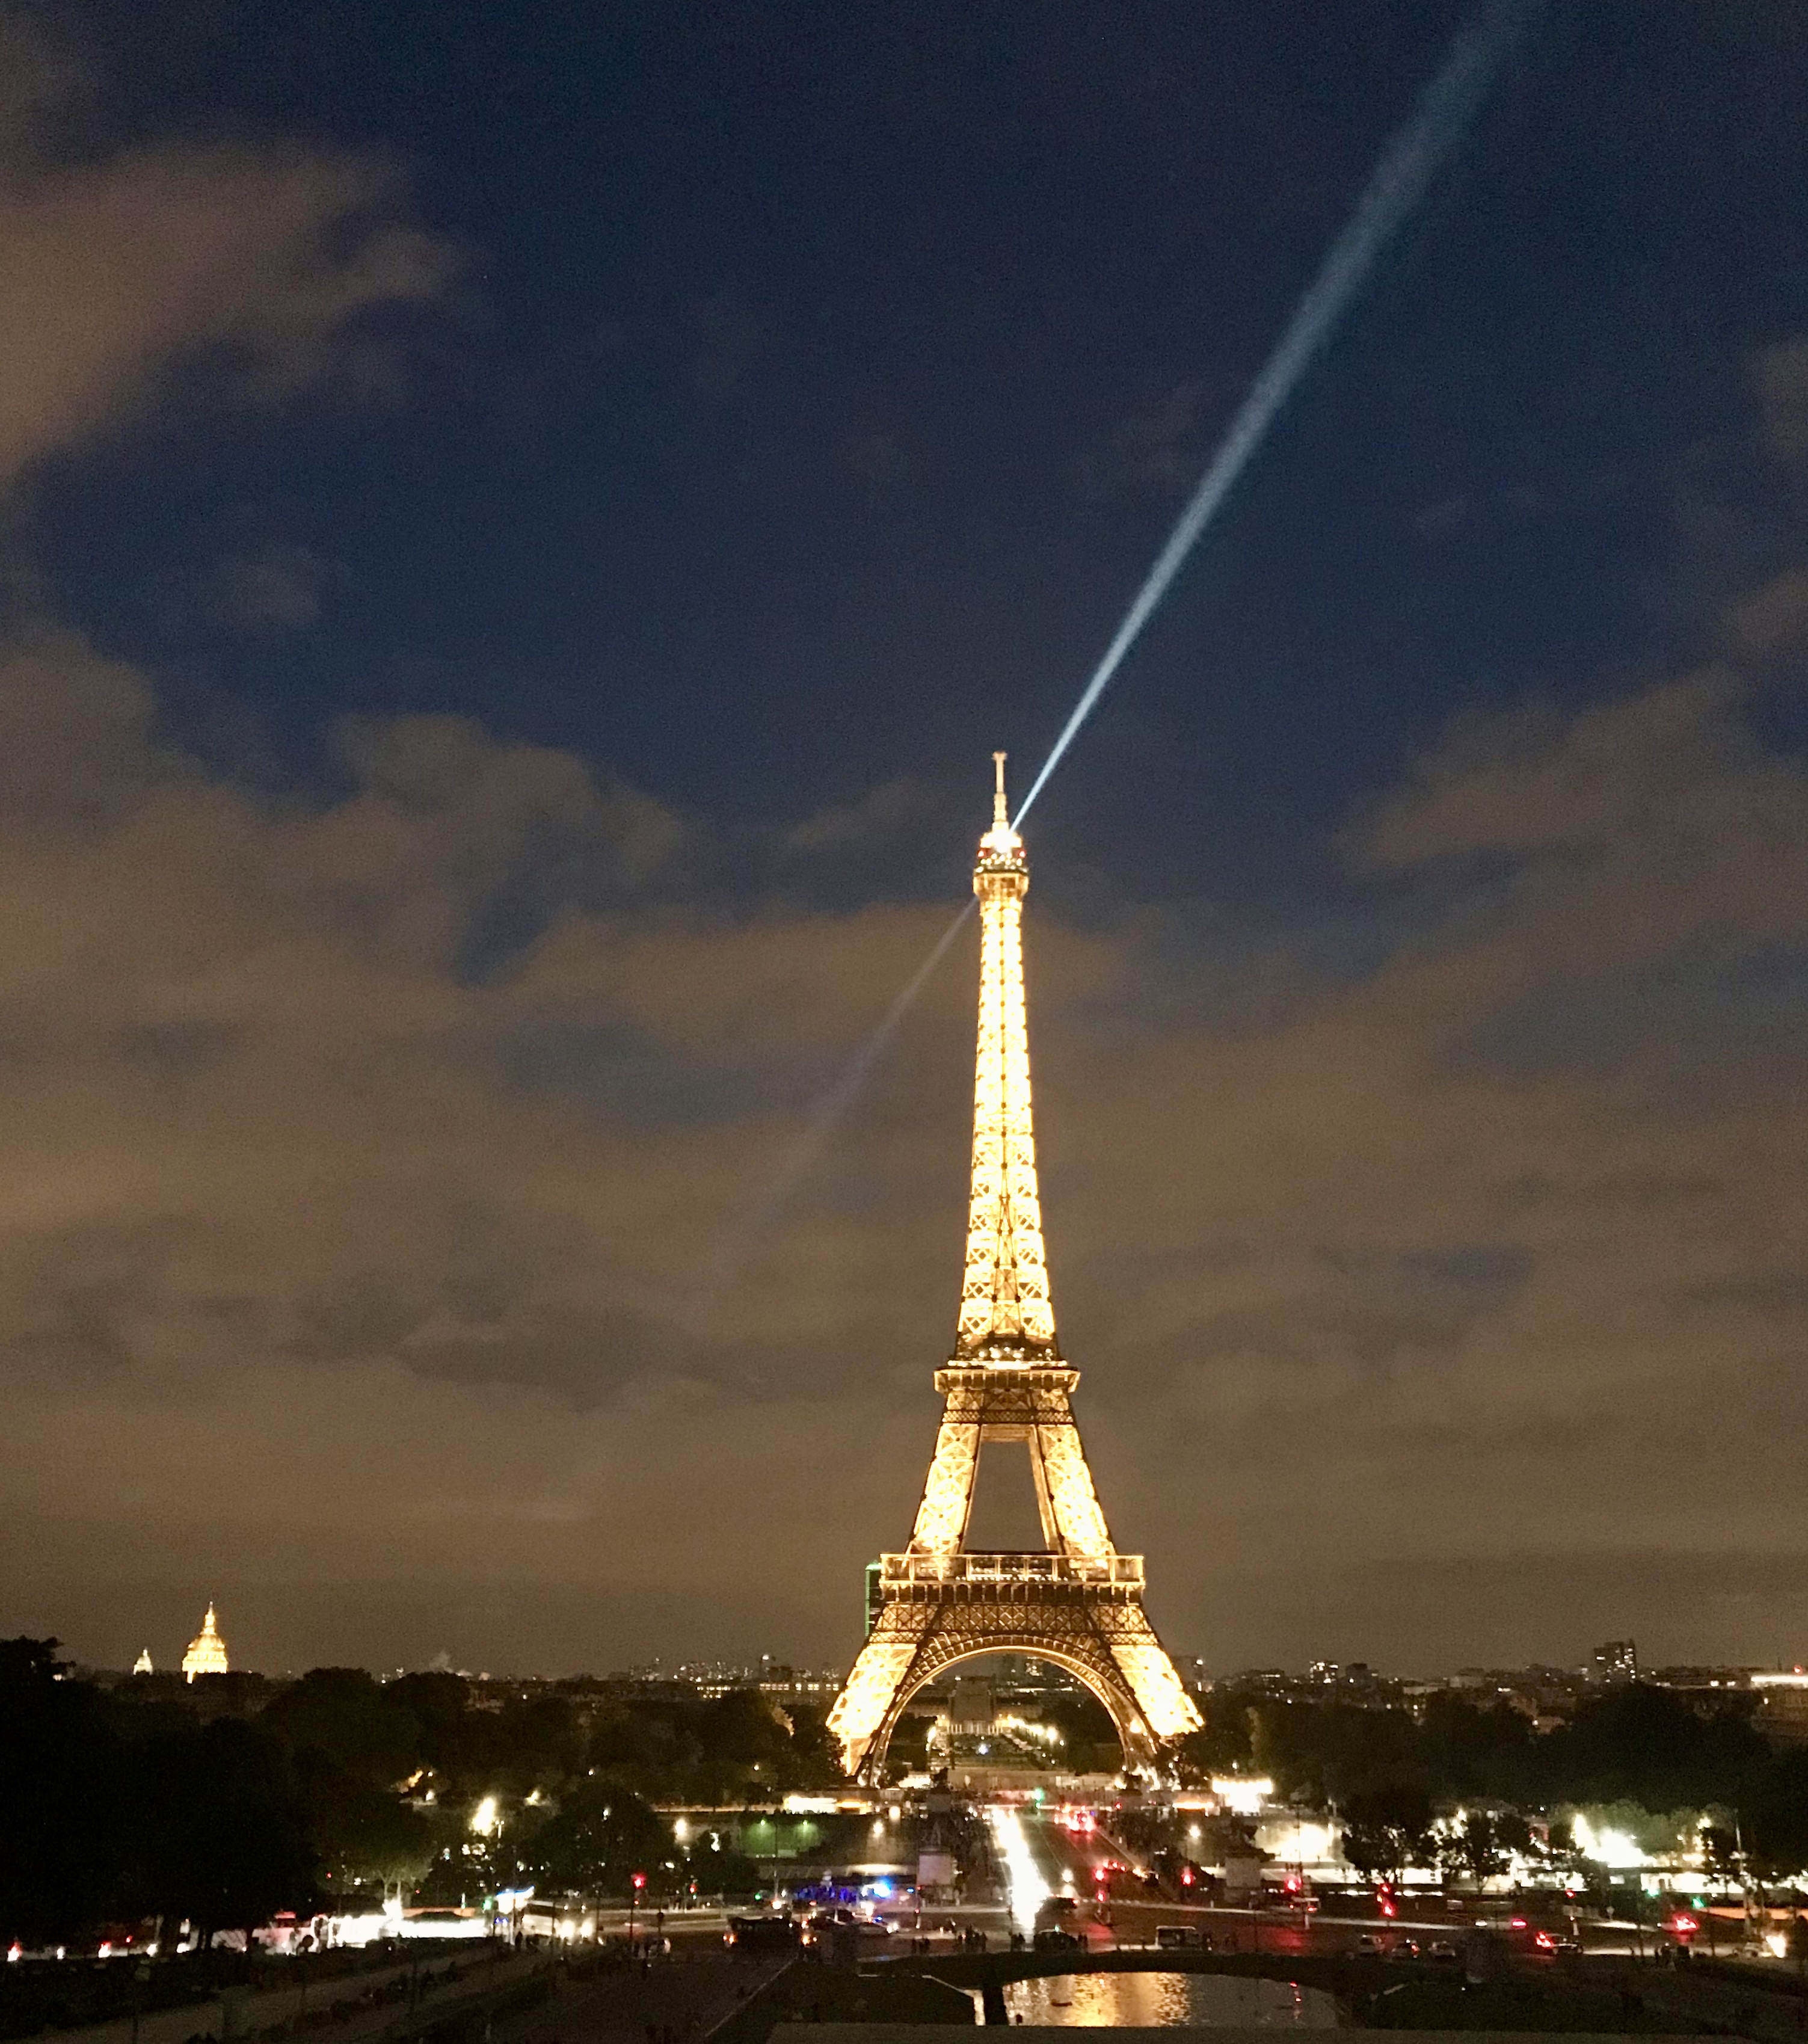 Photo of the Eiffel Tower at night